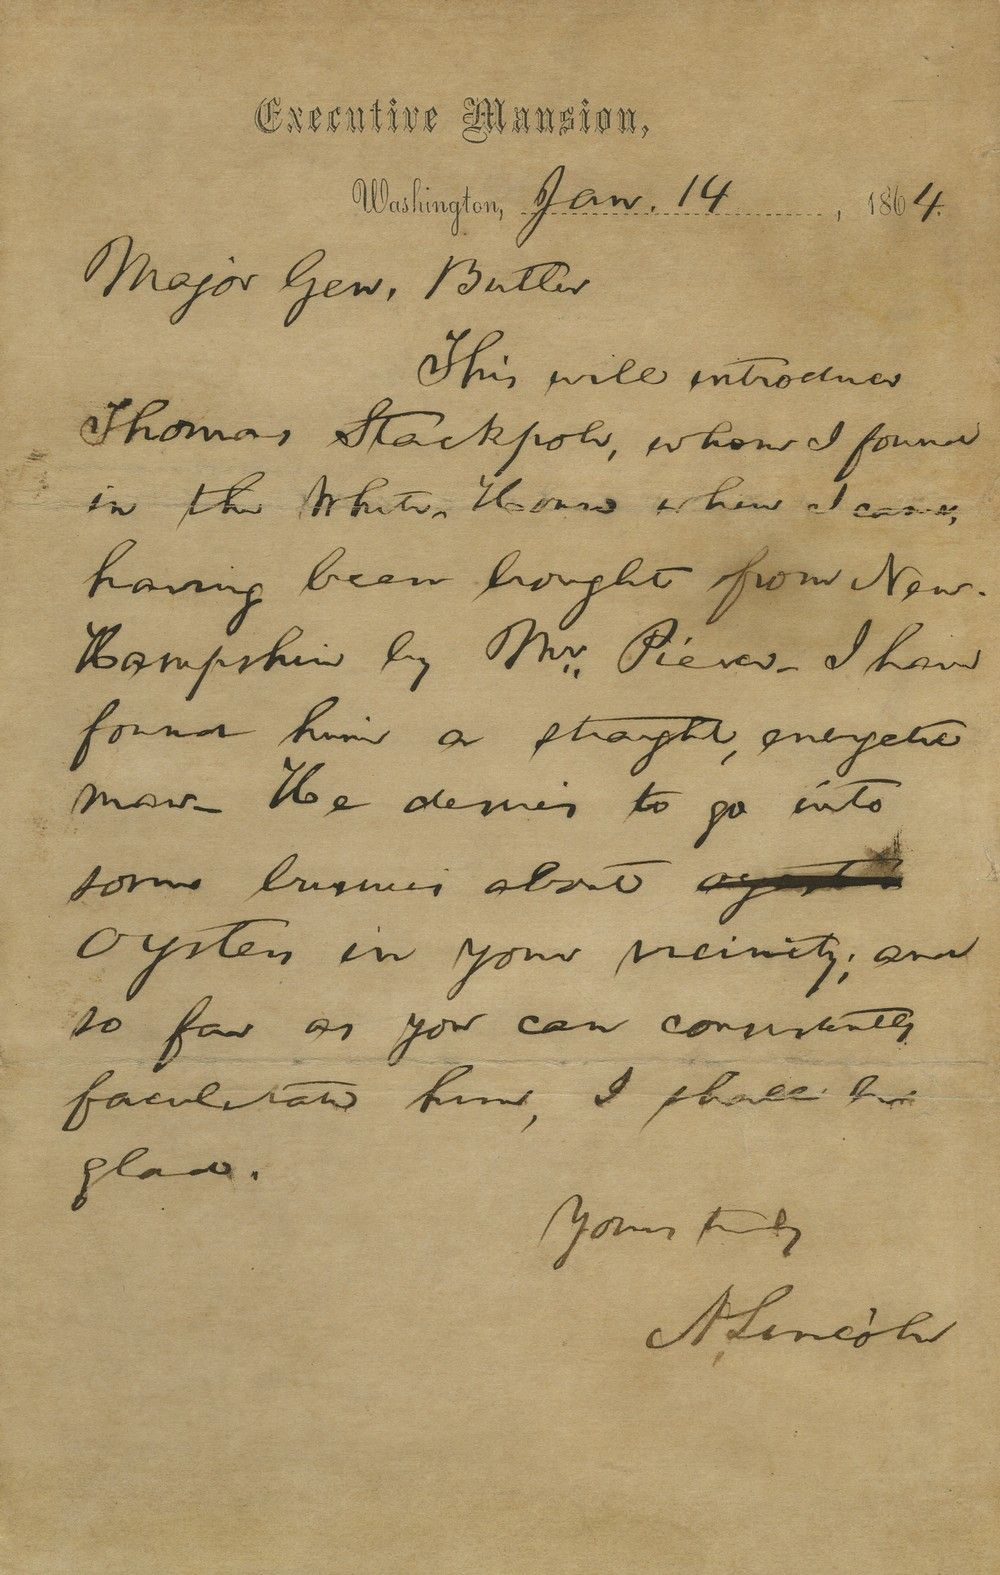 Abraham Lincoln Recommends a Franklin Pierce White House Appointee to General Benjamin Butler